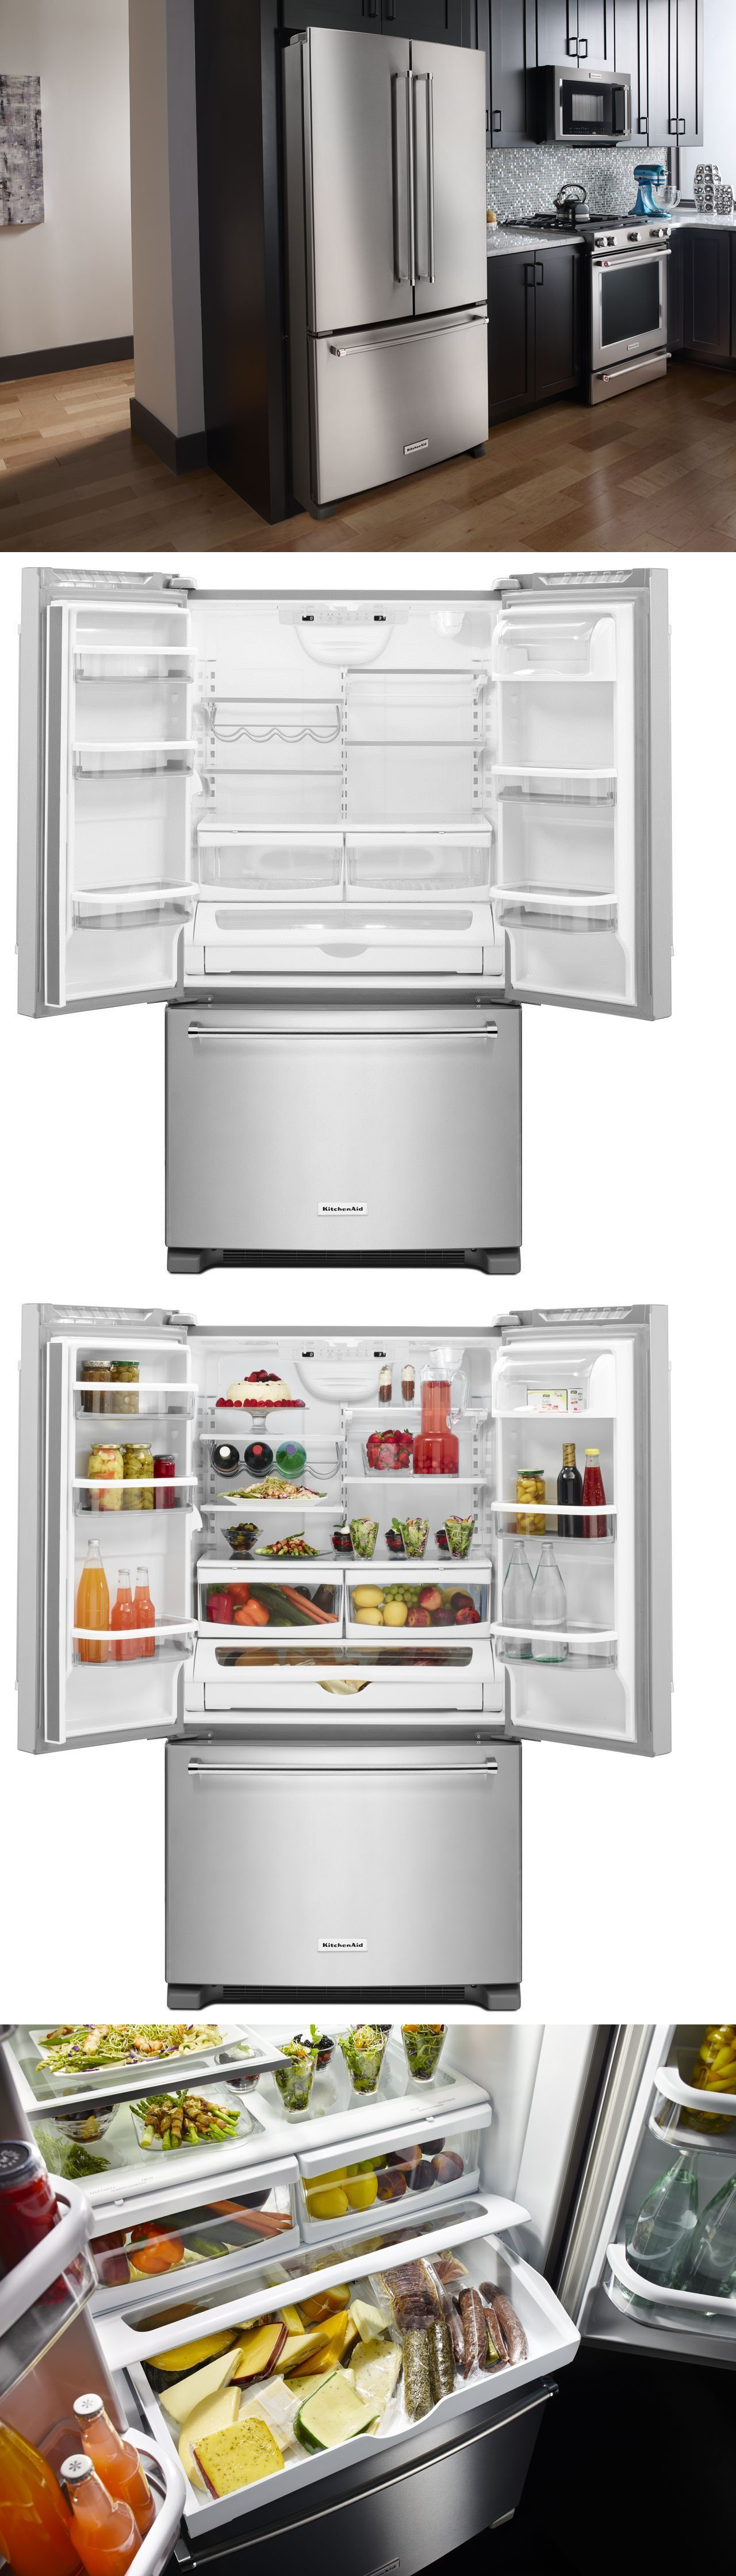 36 Refrigerators Refrigerators 20713 Kitchenaid Krff305ess 36 French Door